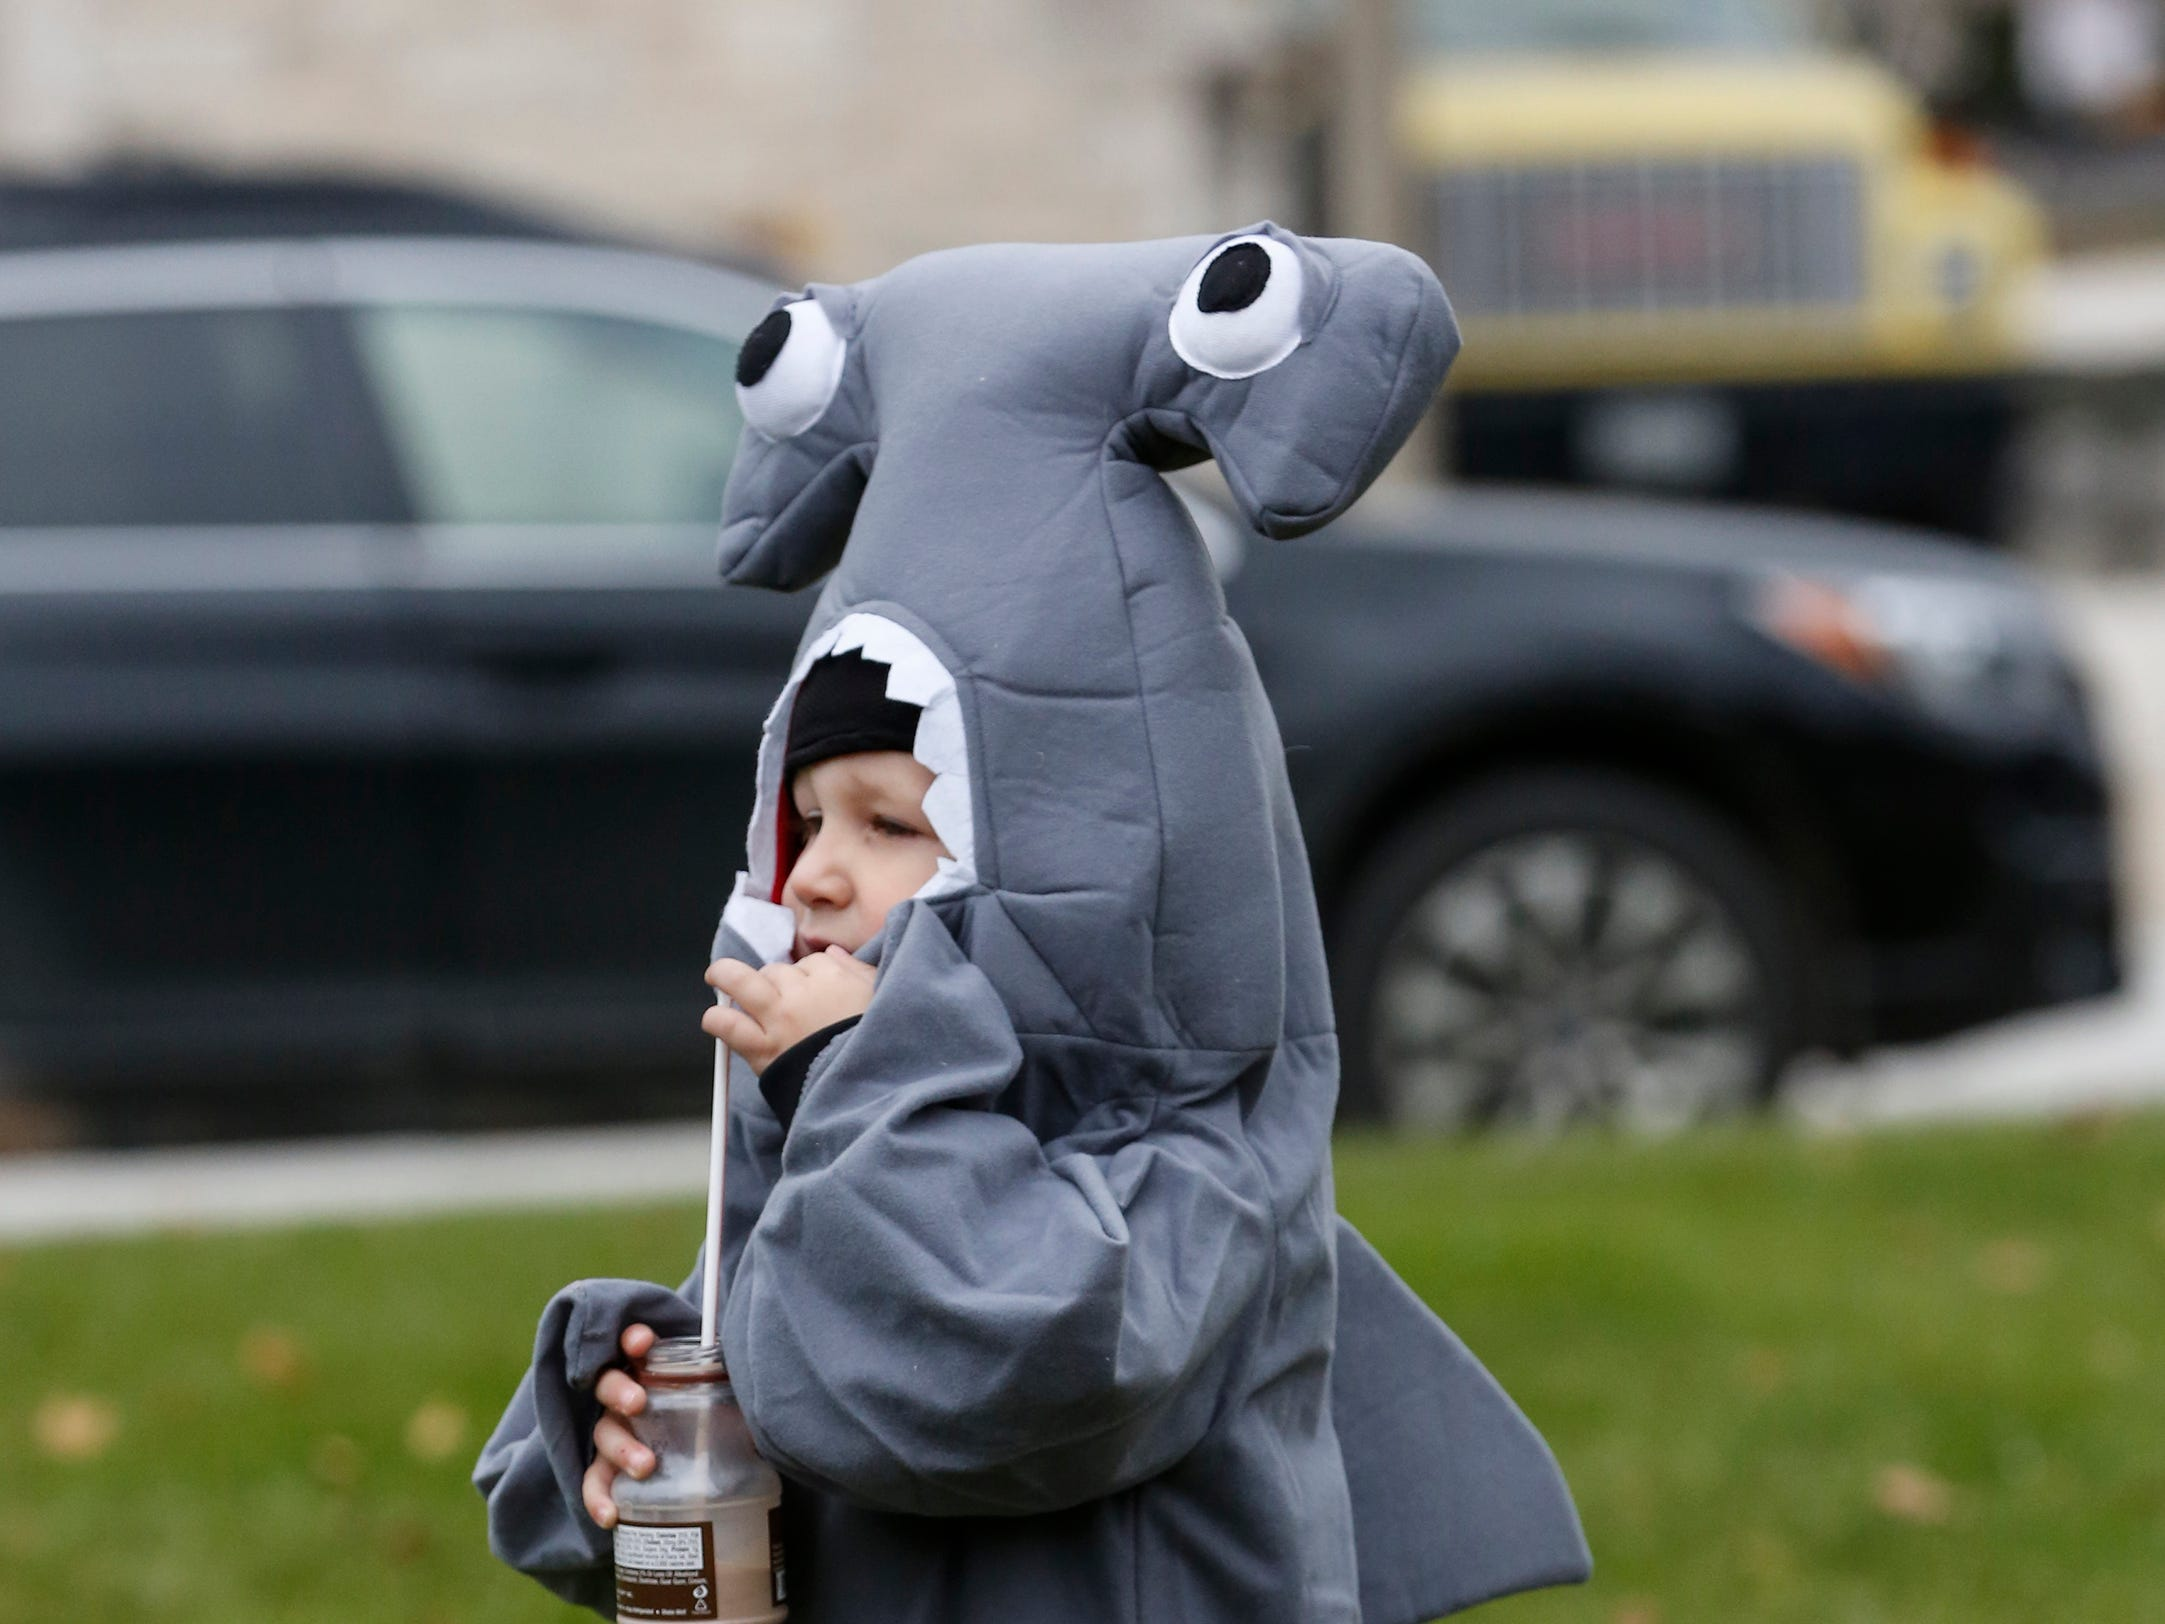 Ryder Hultgren, 4, dressed as a shark during Downtown Trick or Treat Saturday, October 27, 2018, in Two Rivers, Wis. Joshua Clark/USA TODAY NETWORK-Wisconsin